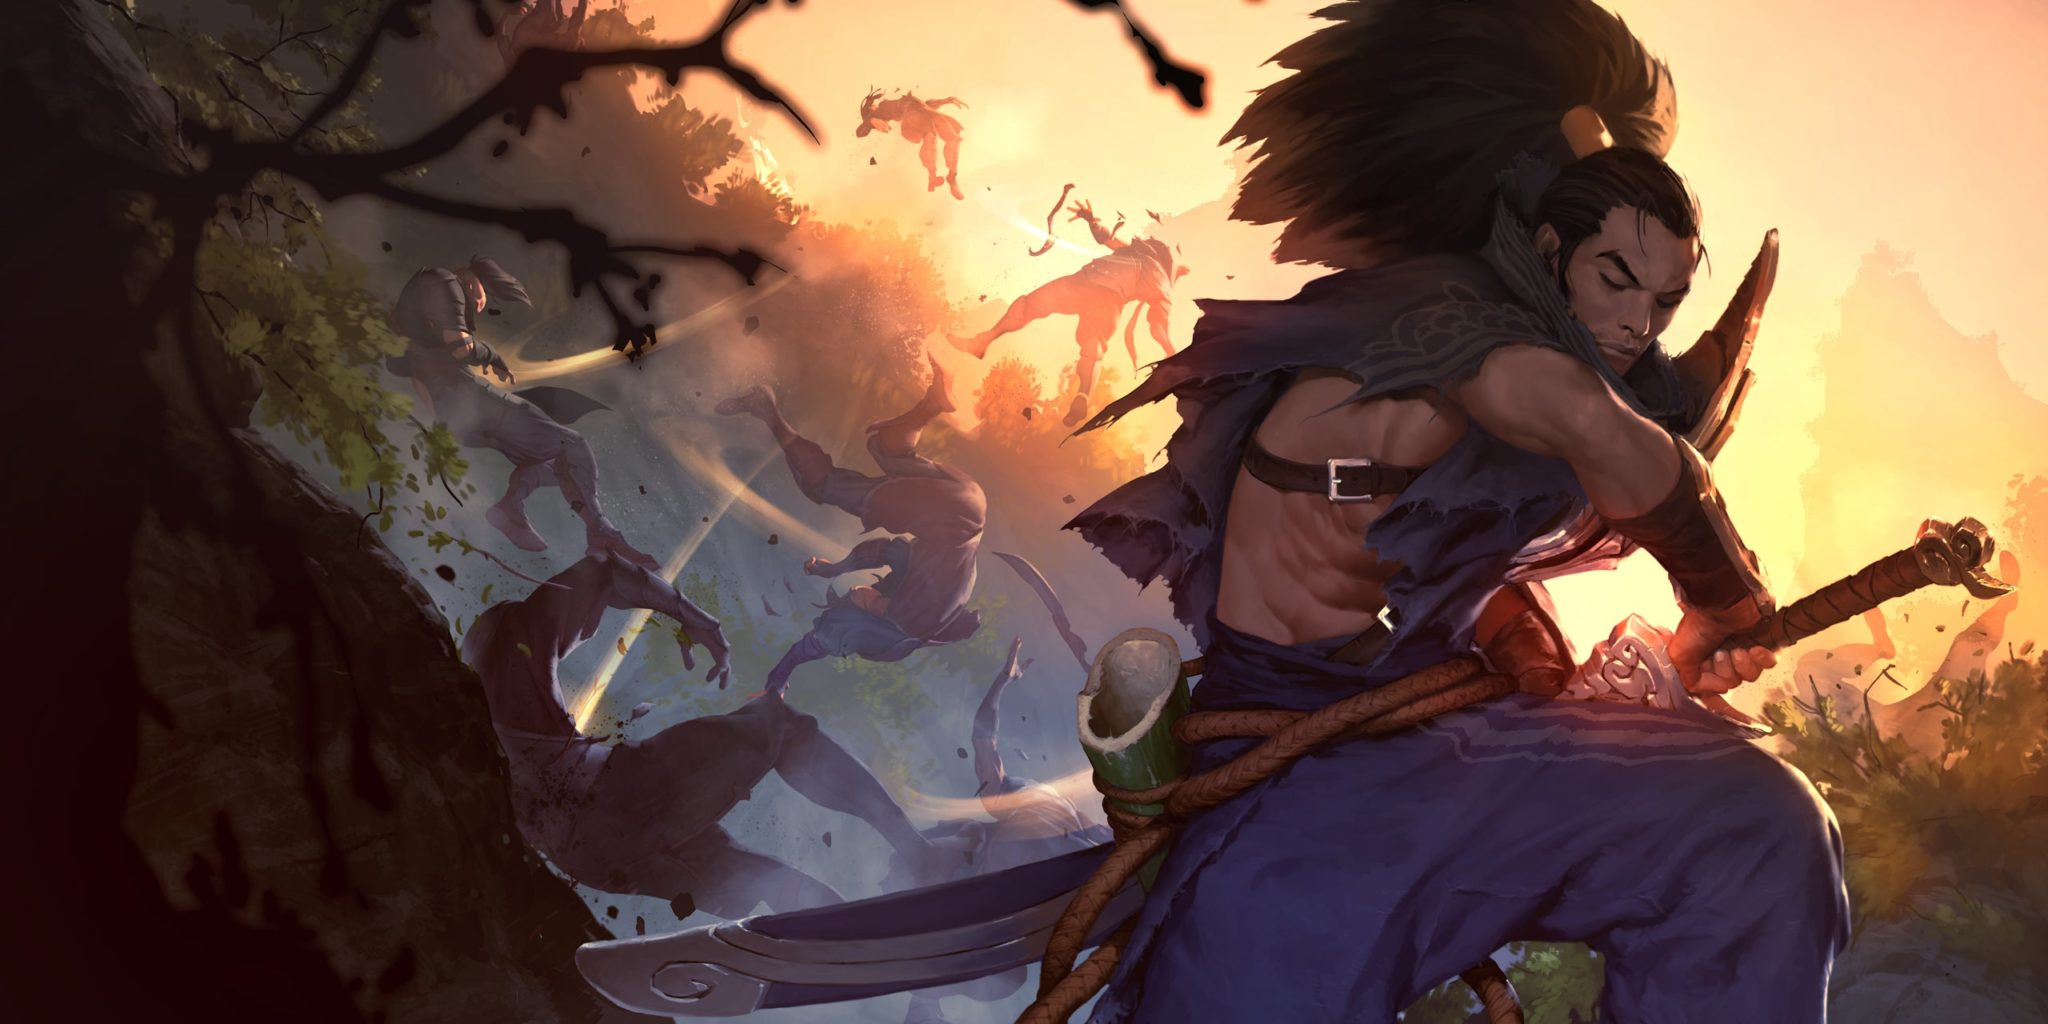 League could be getting Yasuo 2.0 when Yone is released during the Patch 10.15 cycle.